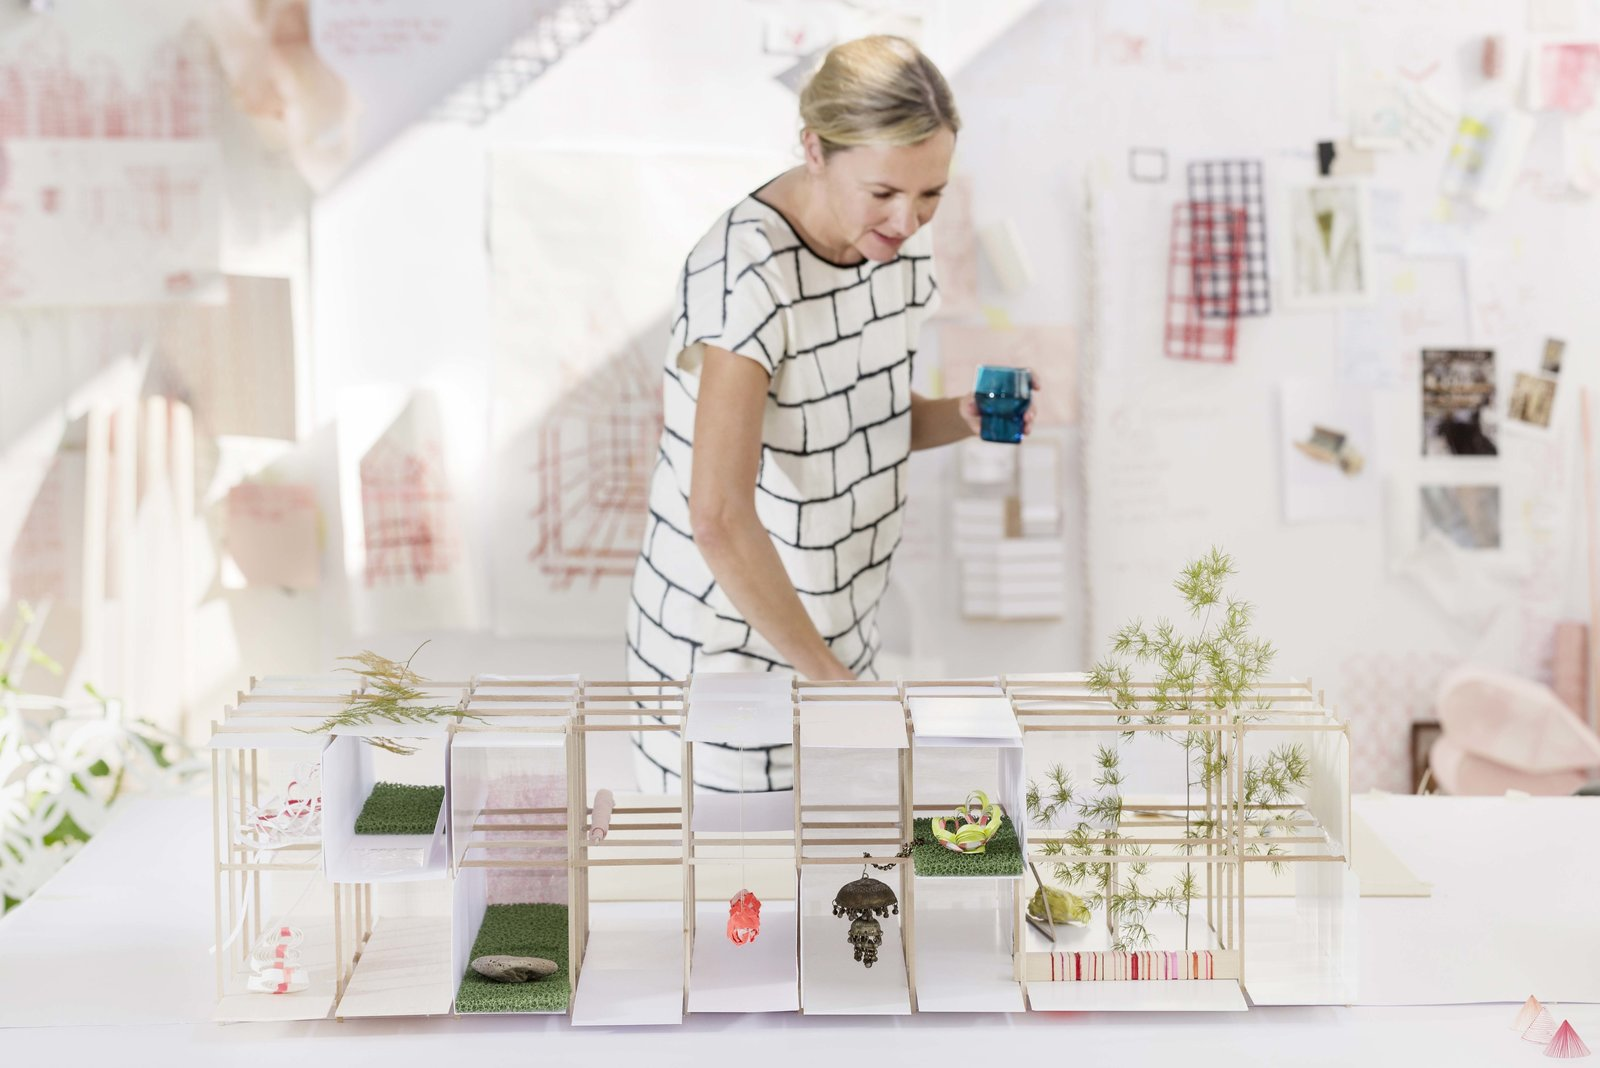 Designer Louise Campbell Featured at Imm Cologne